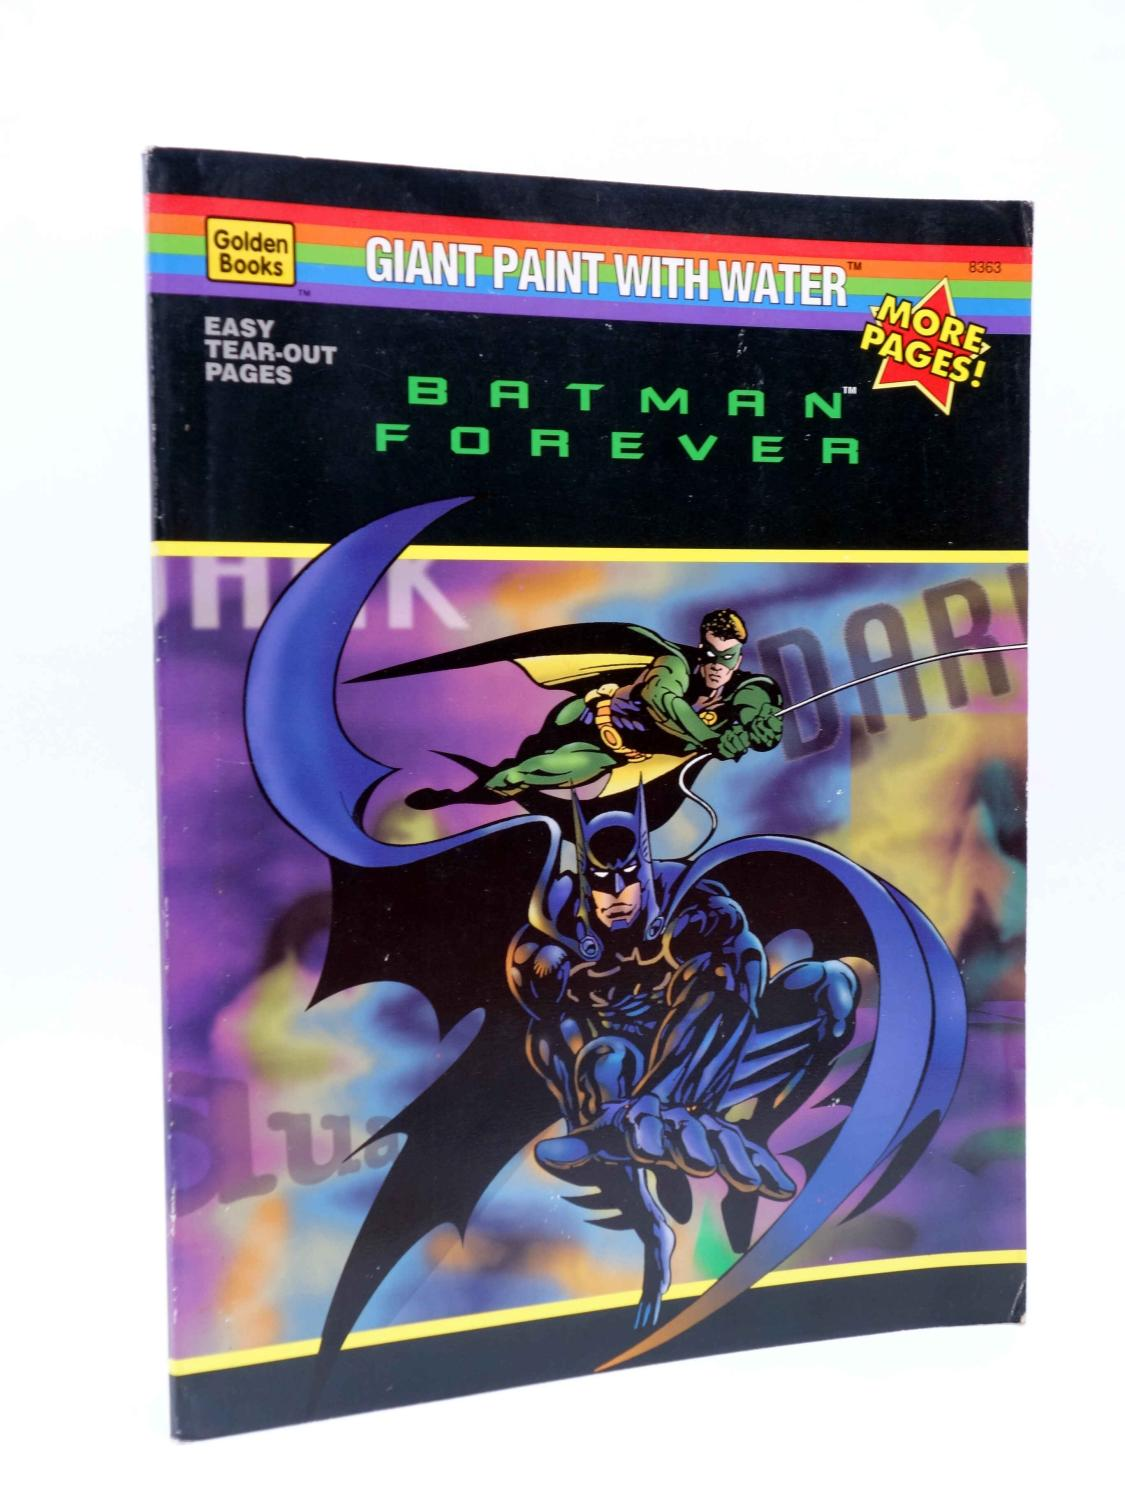 Batman Forever Coloring Book Giant Paint With Water Golden Books 1995 1995 Comic Libros Fugitivos